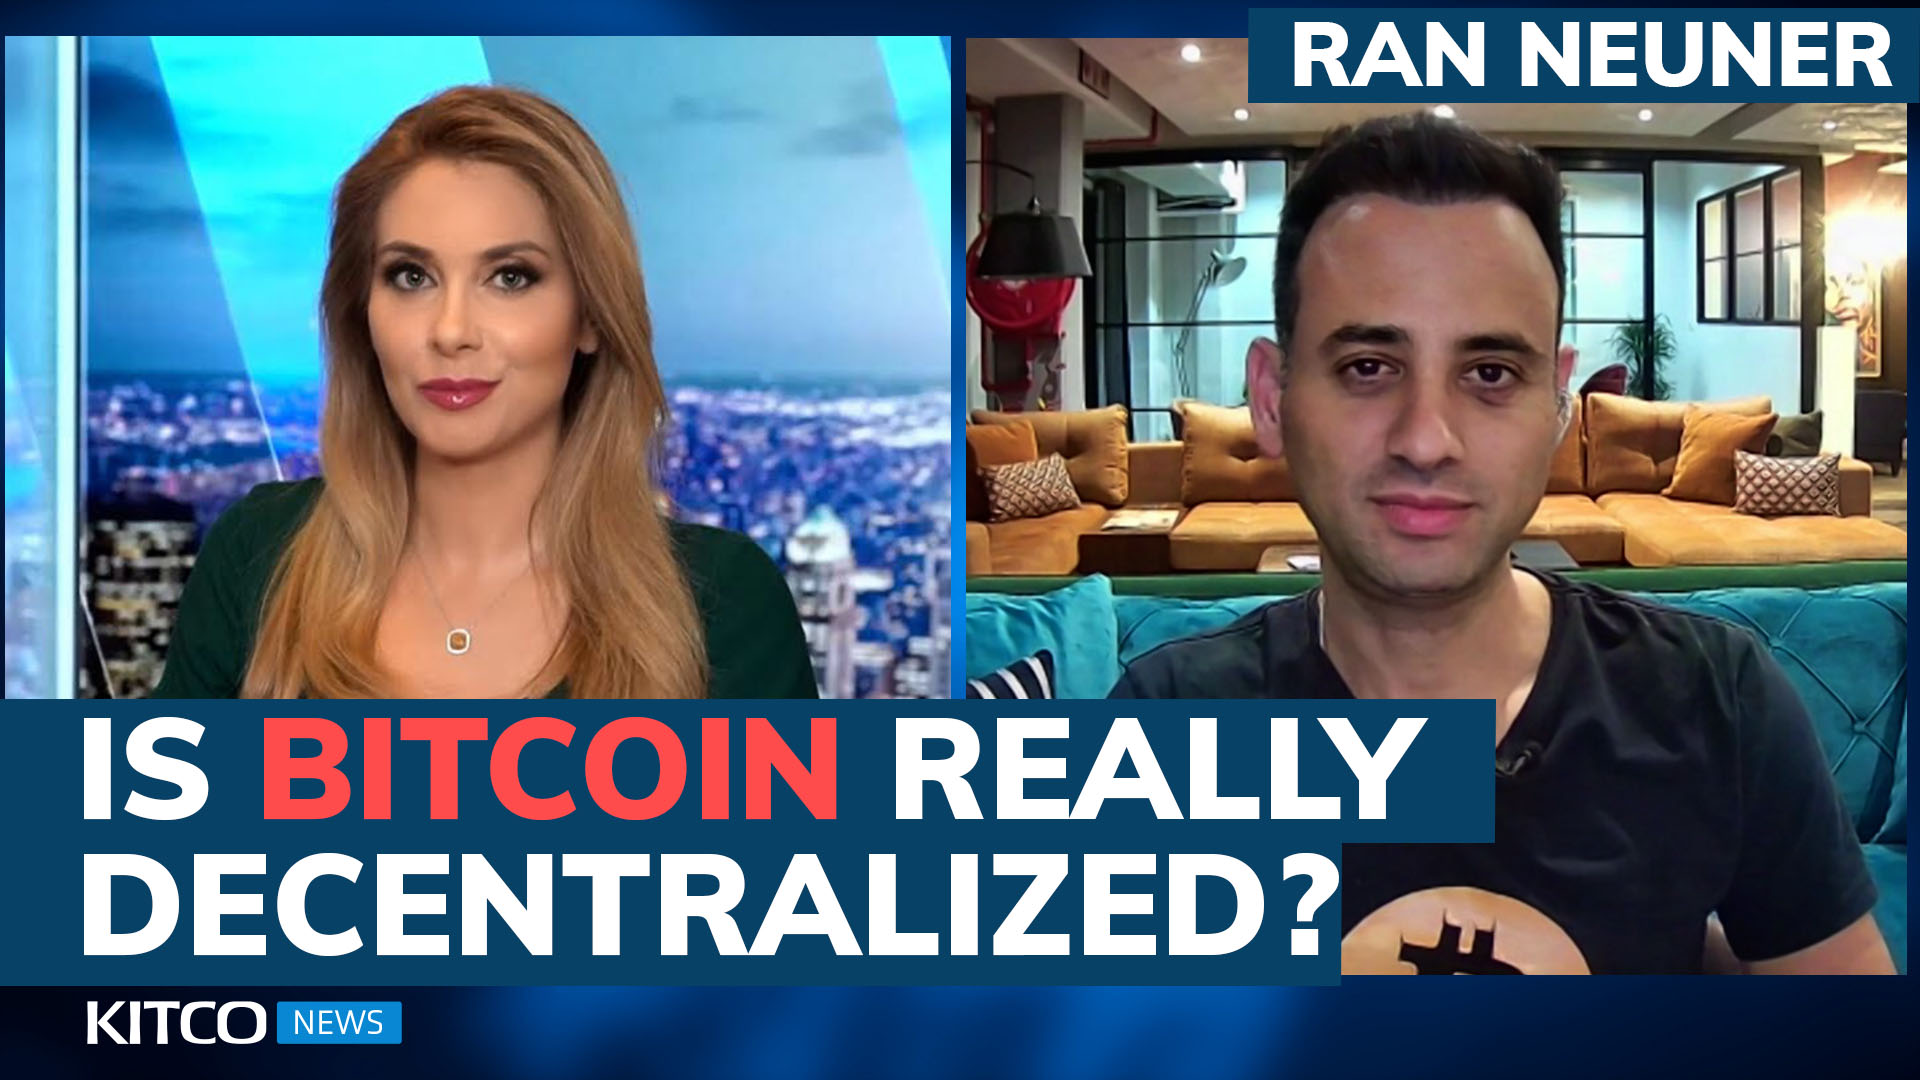 Is Bitcoin really decentralized? What triggered the 'biggest liquidation' in history - Ran Neuner - Kitco NEWS